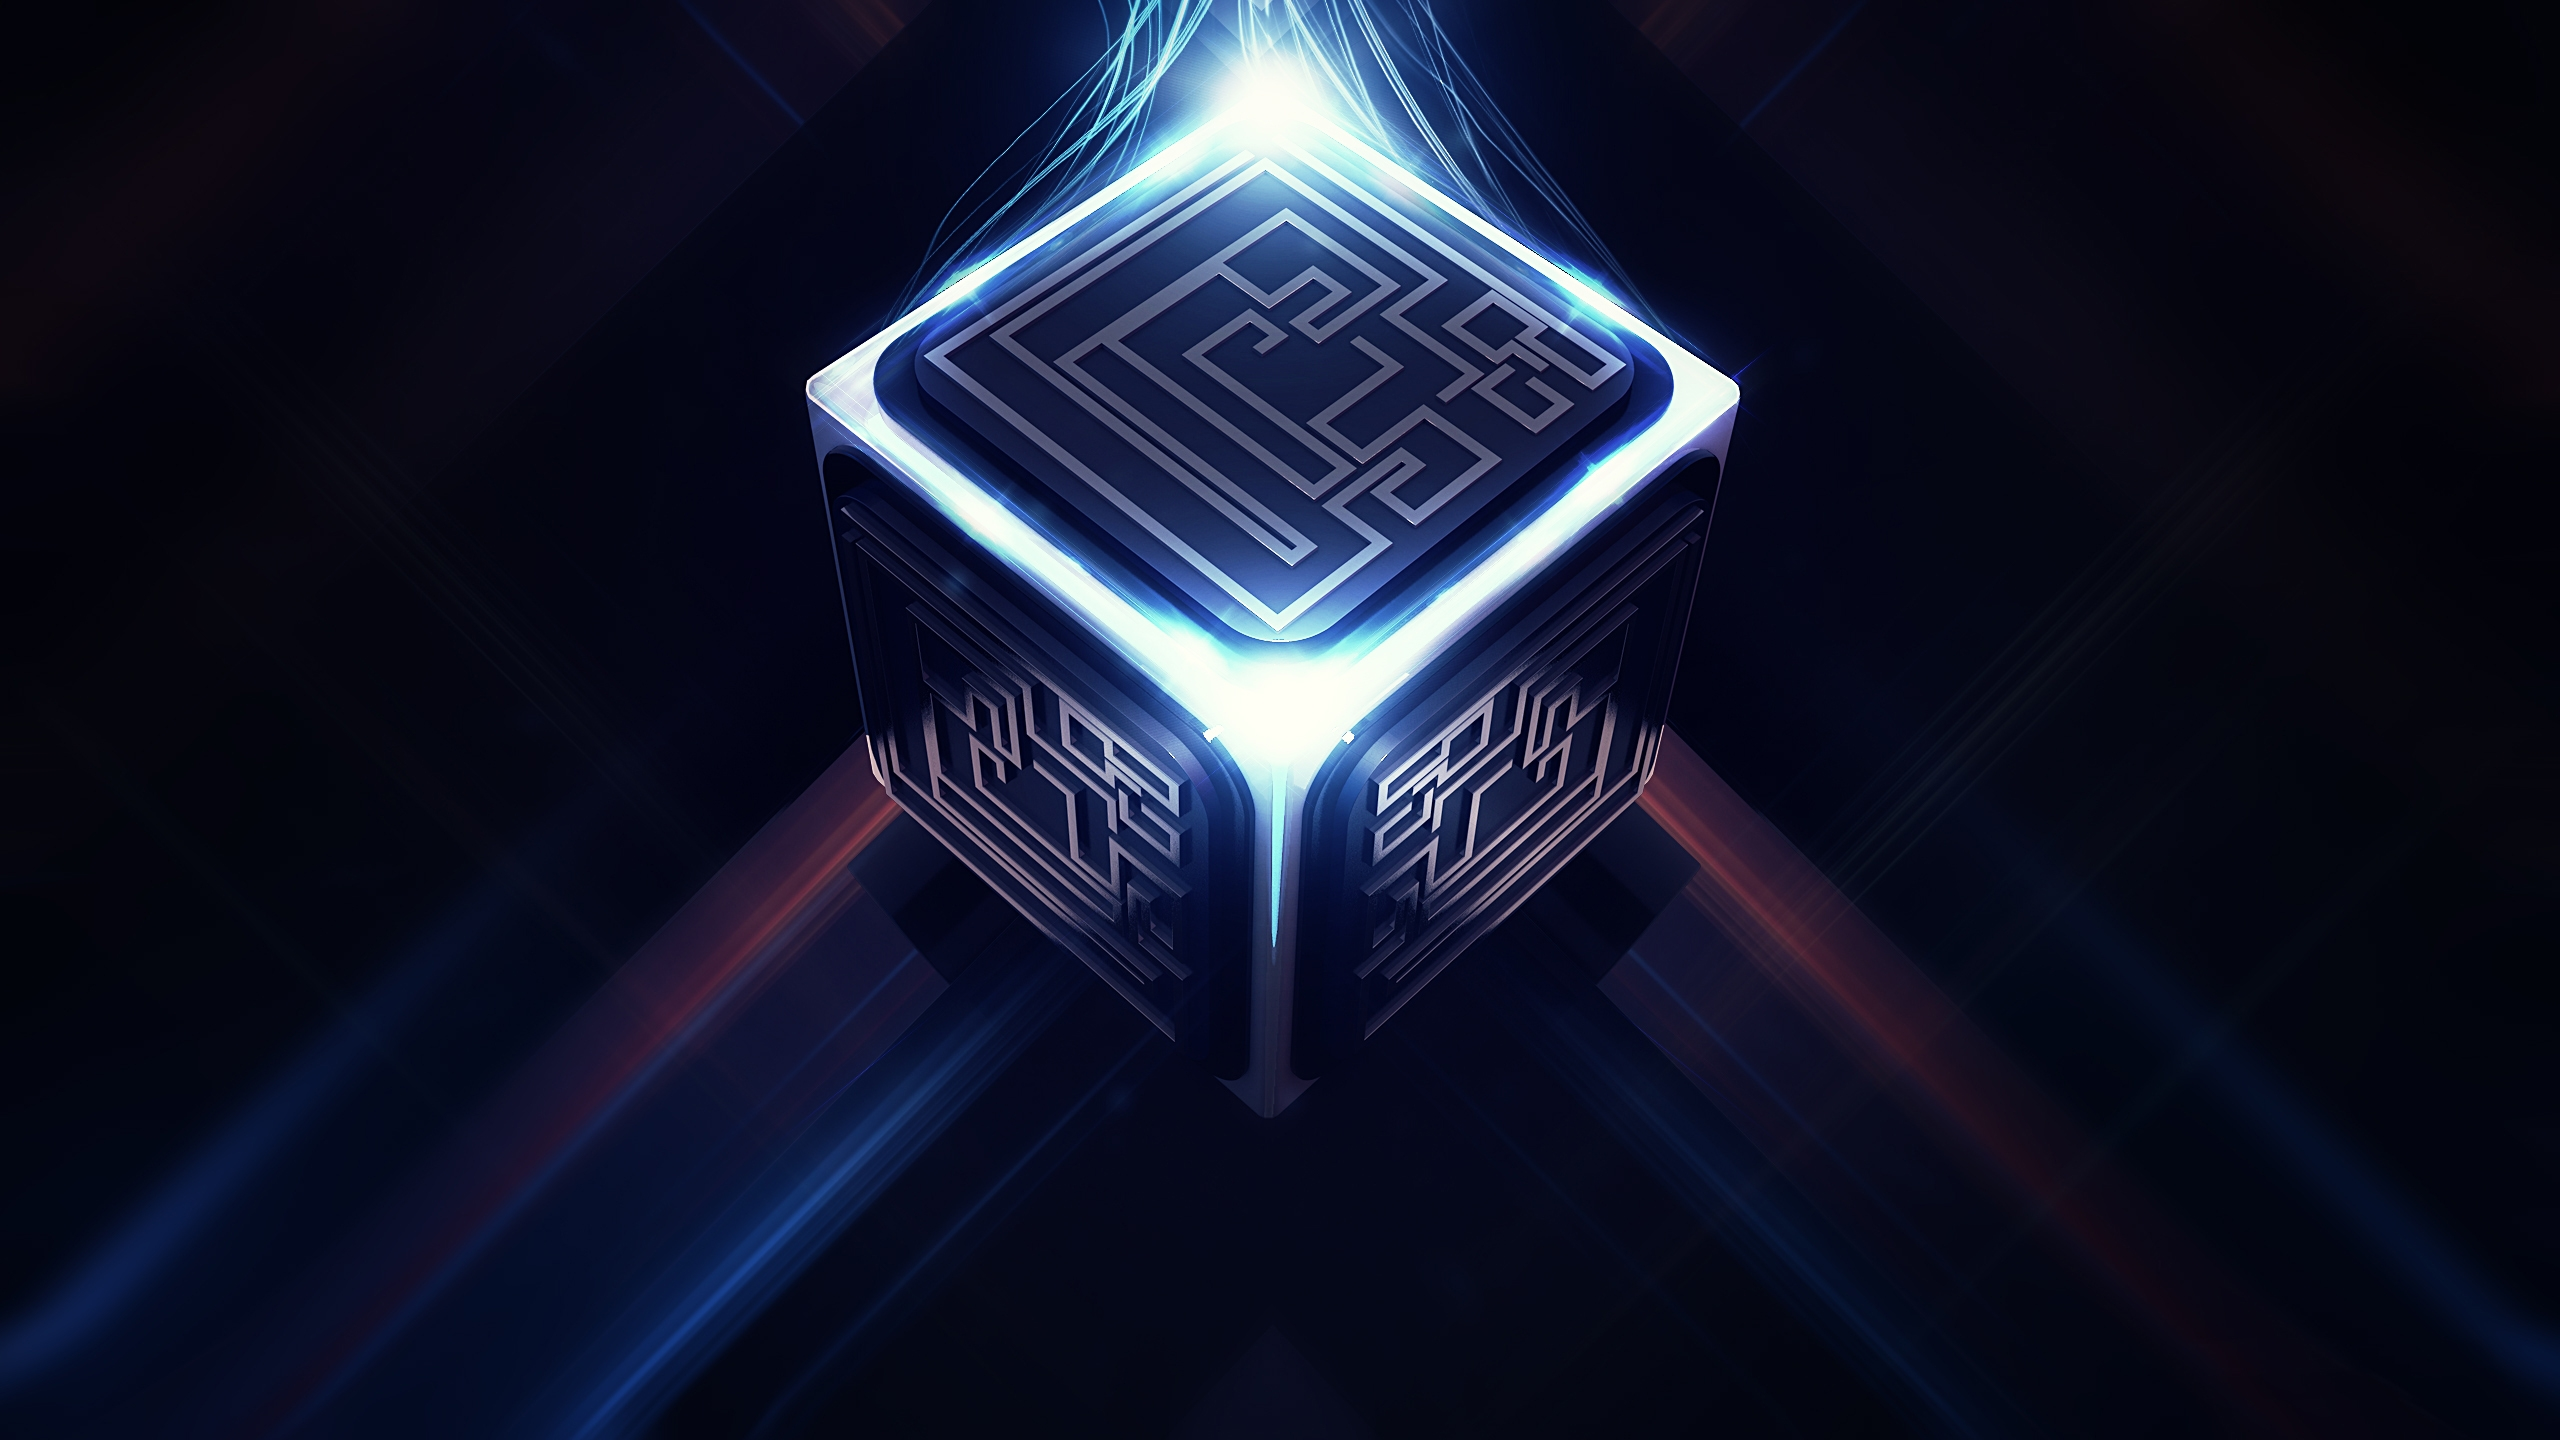 3D Cube Maze Wallpaper   HQ Wallpapers download 100 high quality 2560x1440